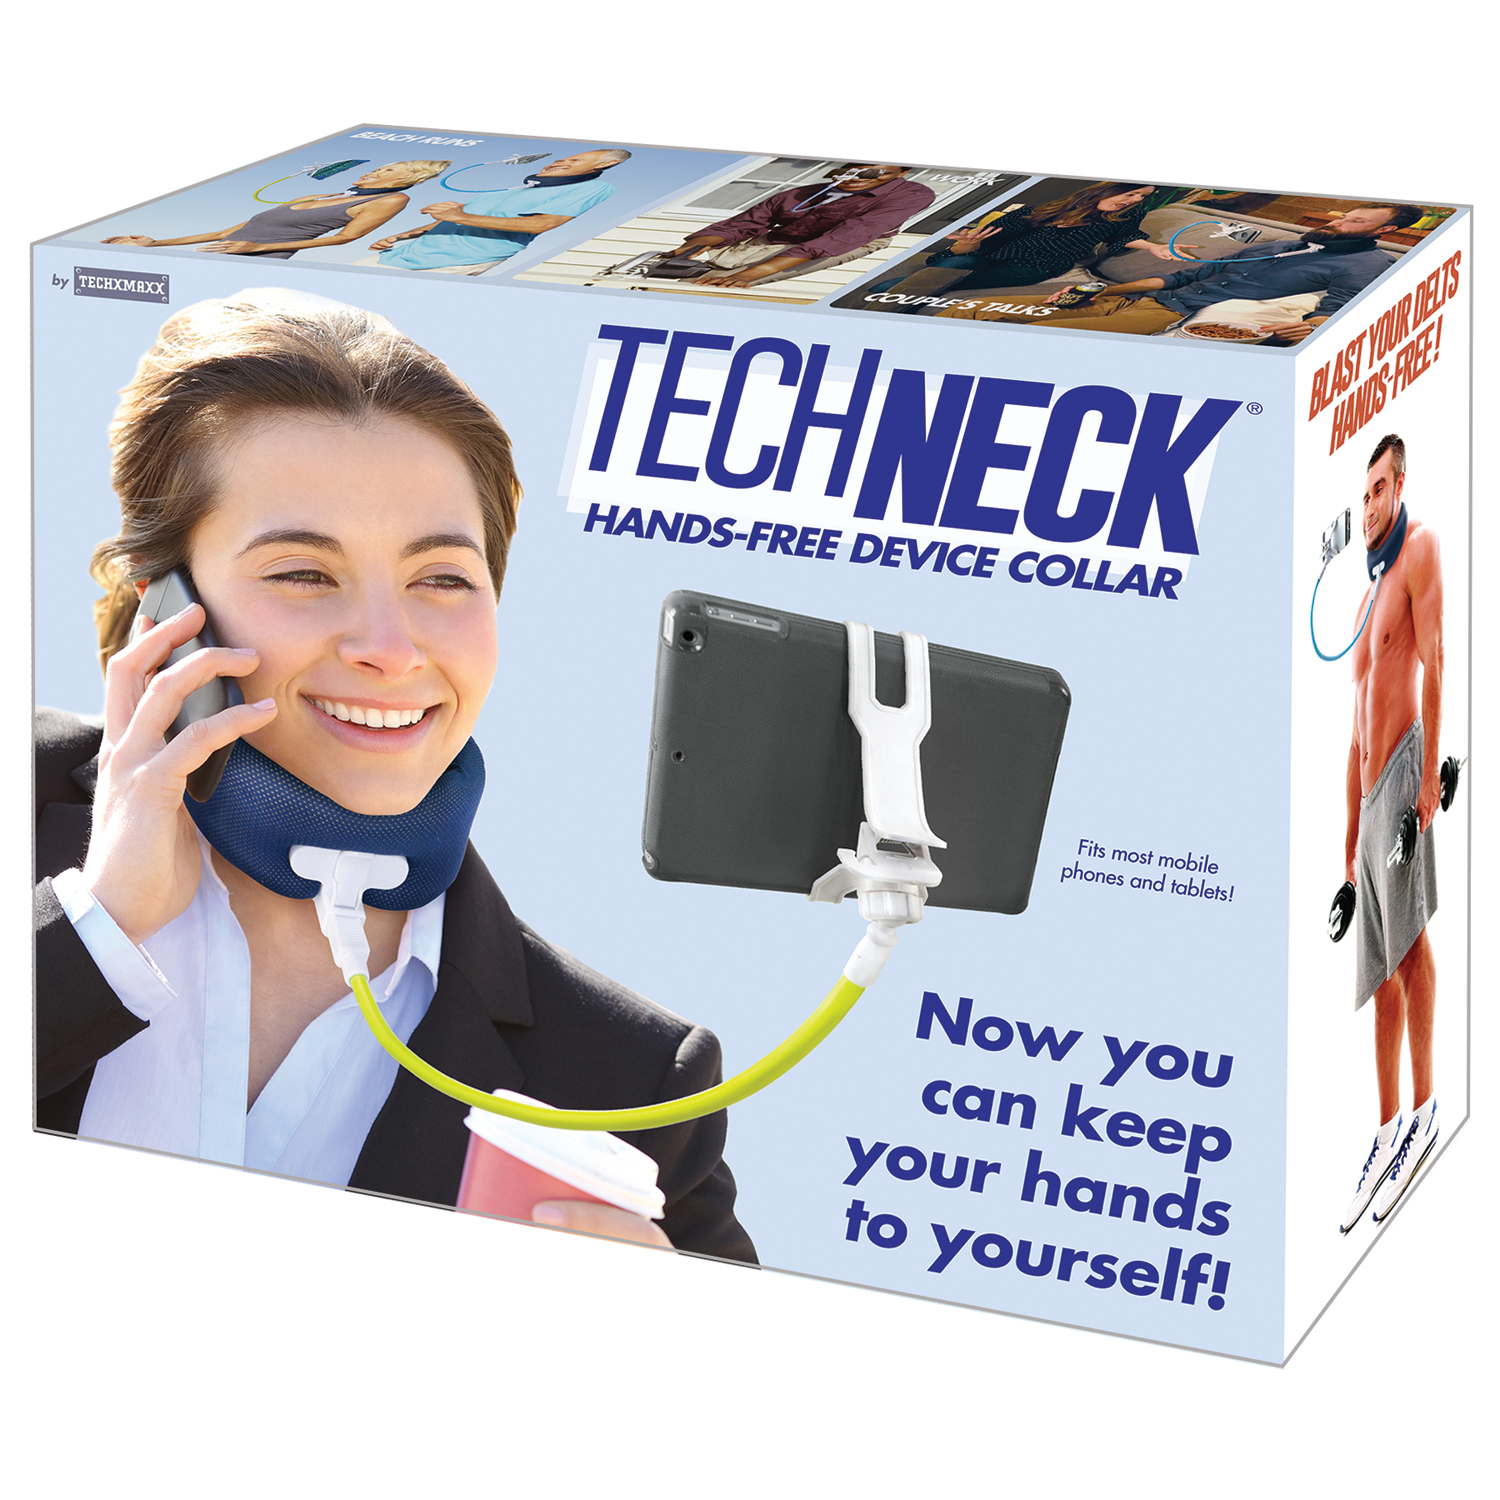 Genuine Fake Gift Box - Tech Neck - Funny Faux Product